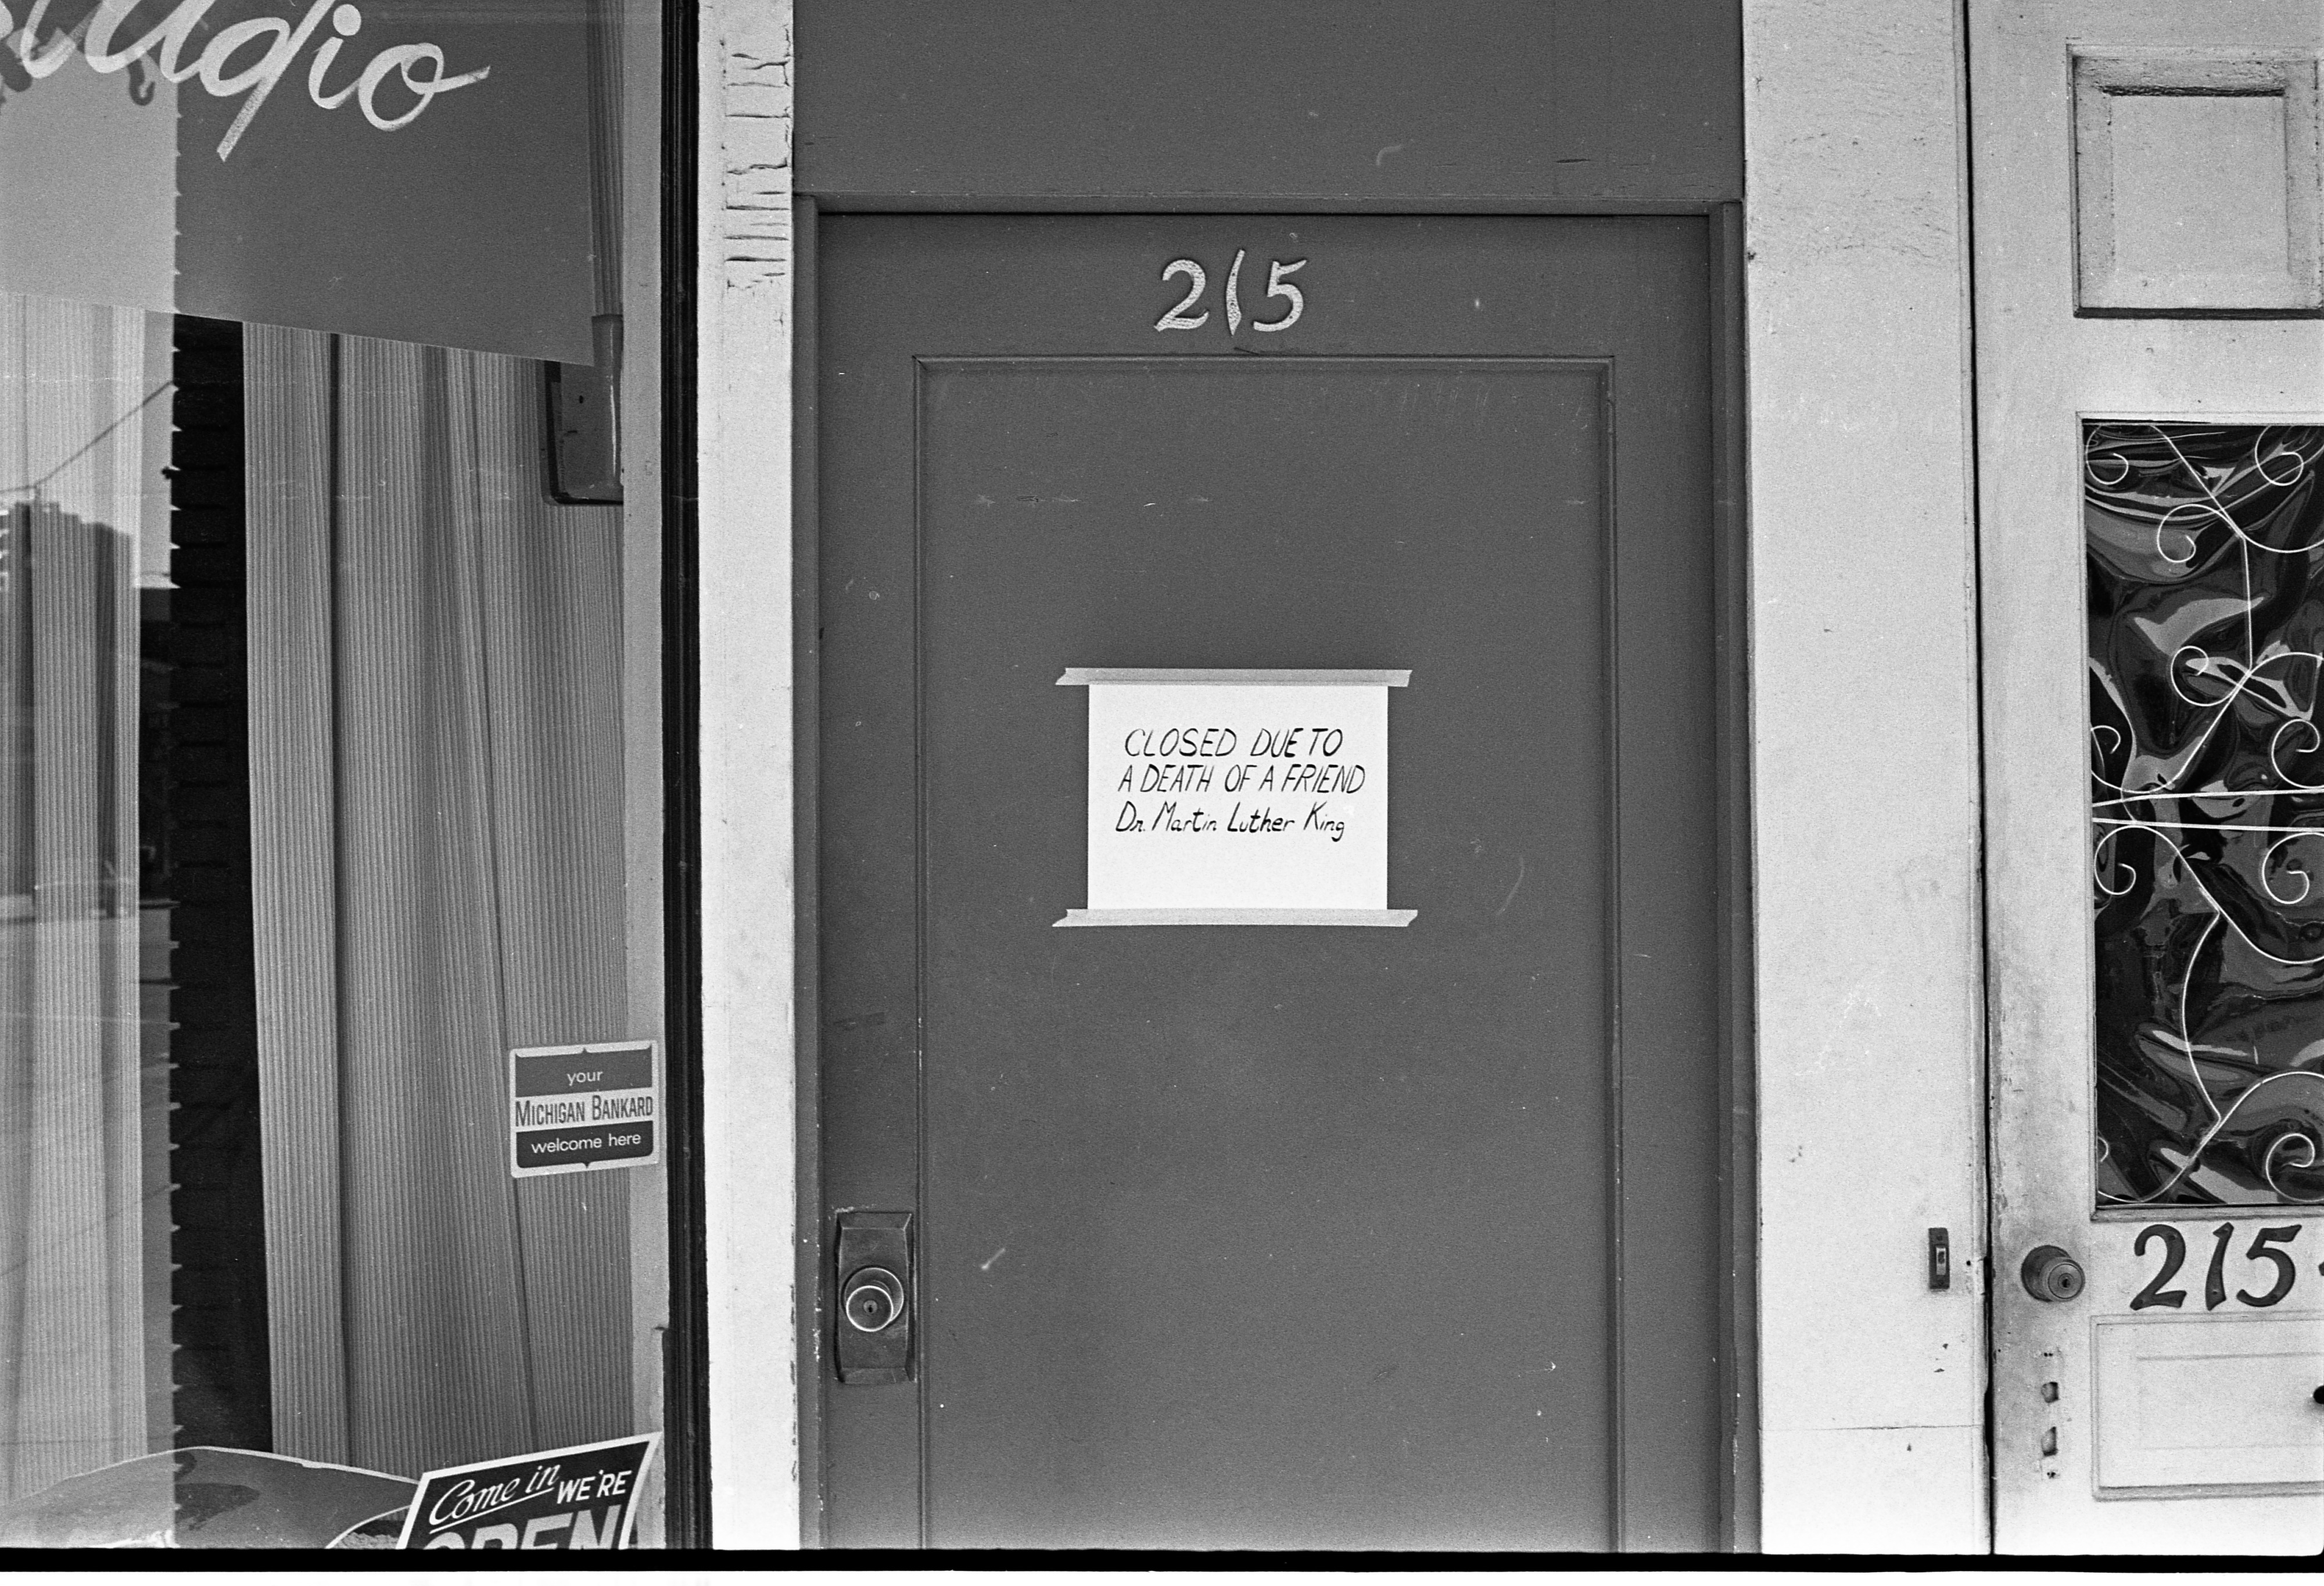 Artist, Jon Lockard's Studio Door With Message About Martin Luther King Jr.'s Death, April 1968 image